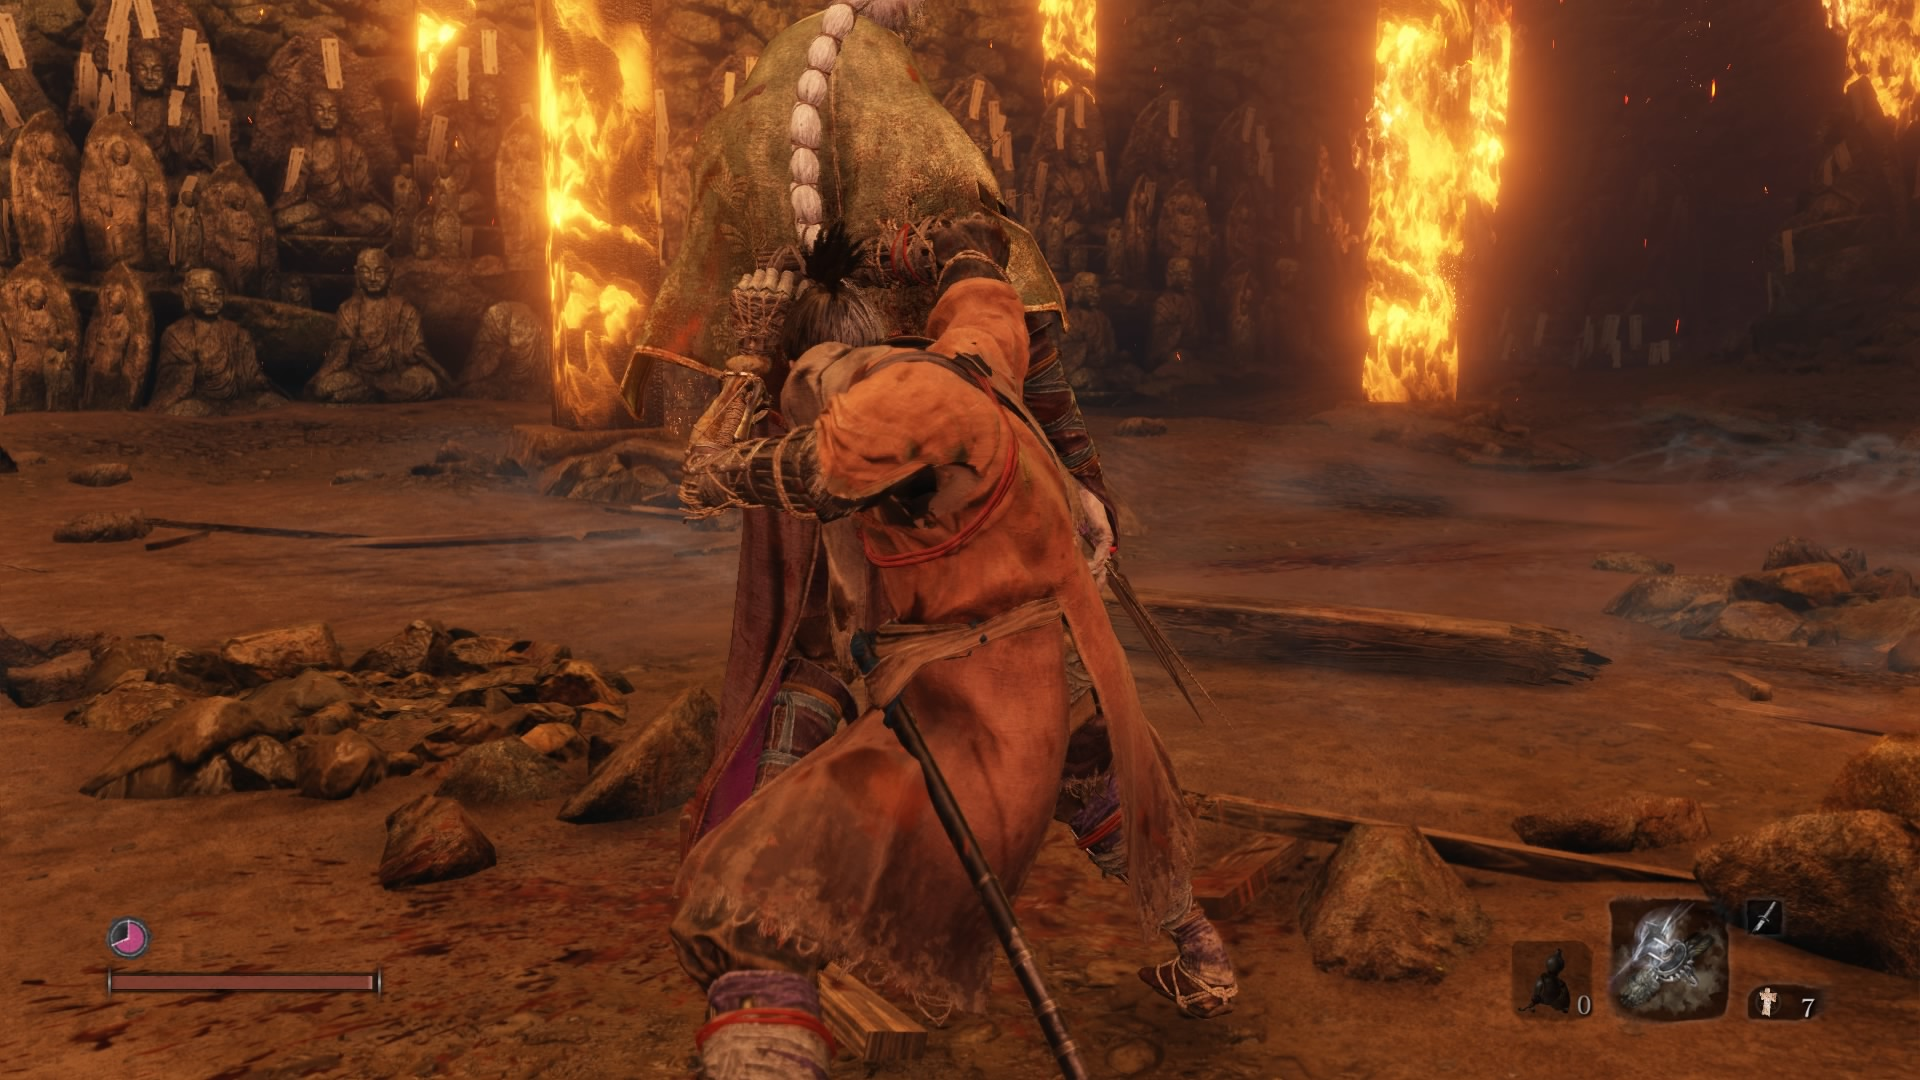 Video Game Accessories Have An Inquiring Mind Sekiro Shadows Die Twice Skin For Xbox One X Console And 2 Controllers